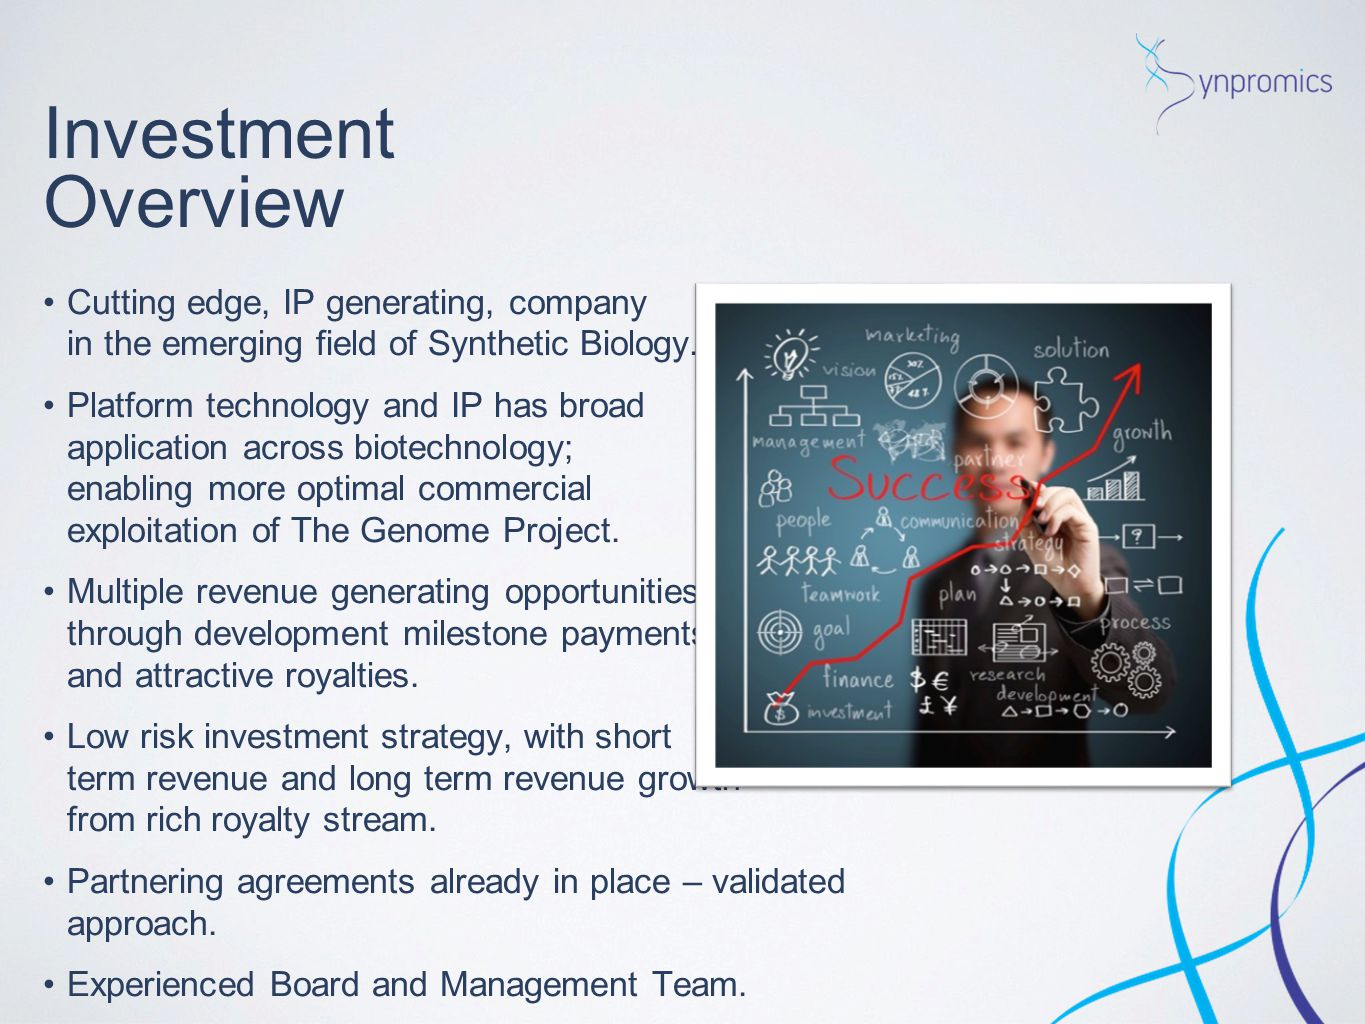 Investment Overview Cutting edge, IP generating, company in the emerging field of Synthetic Biology.